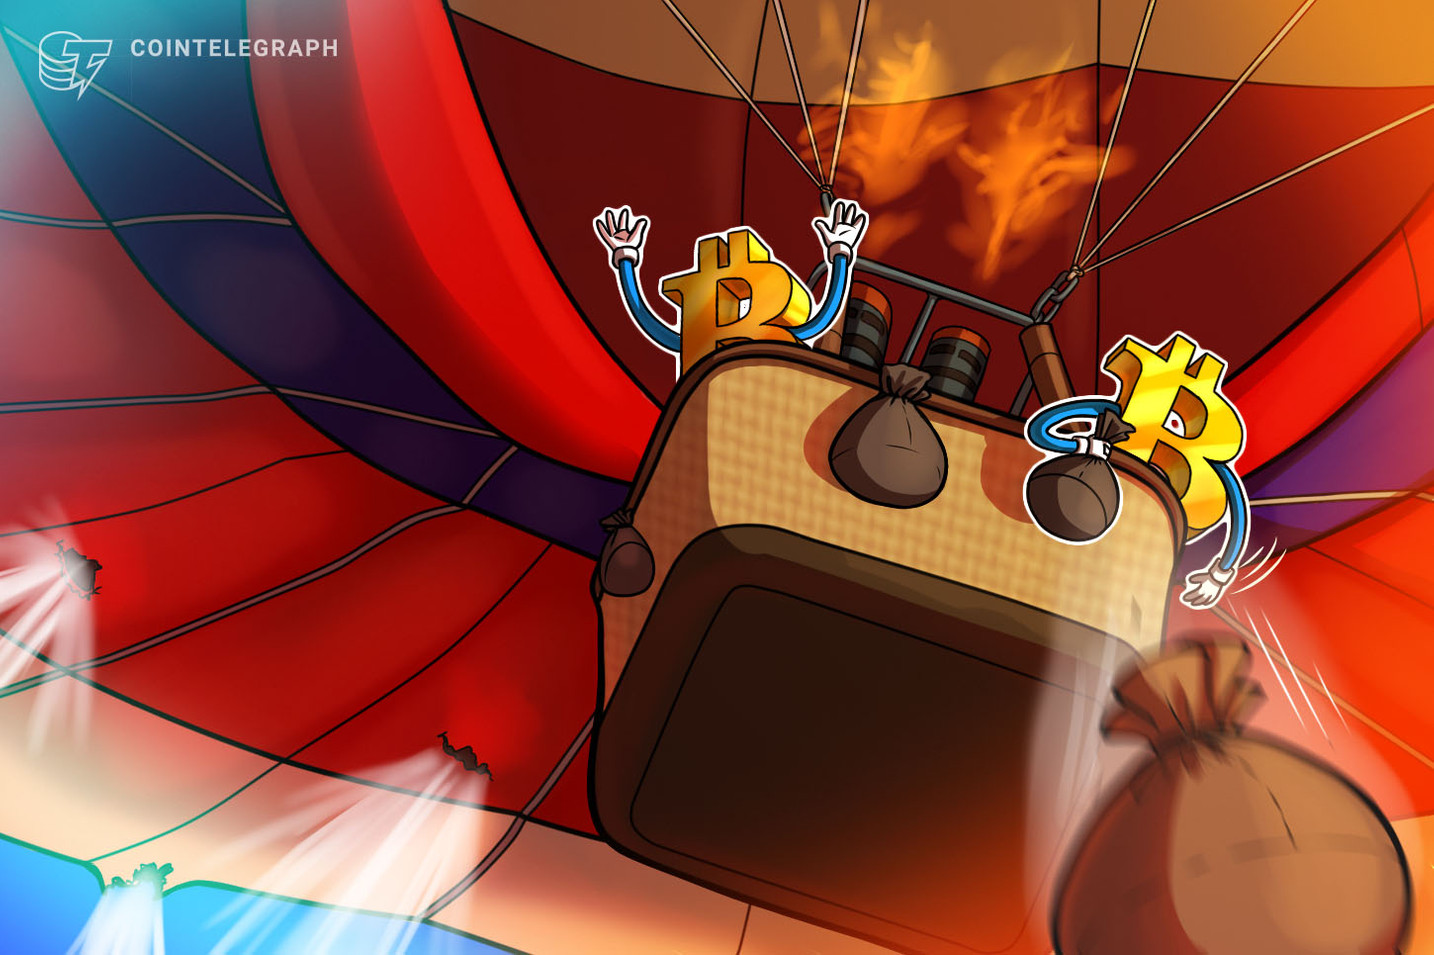 Bitcoin Price Drops to Key Level as 100% Rally Since Crash Looks Shaky